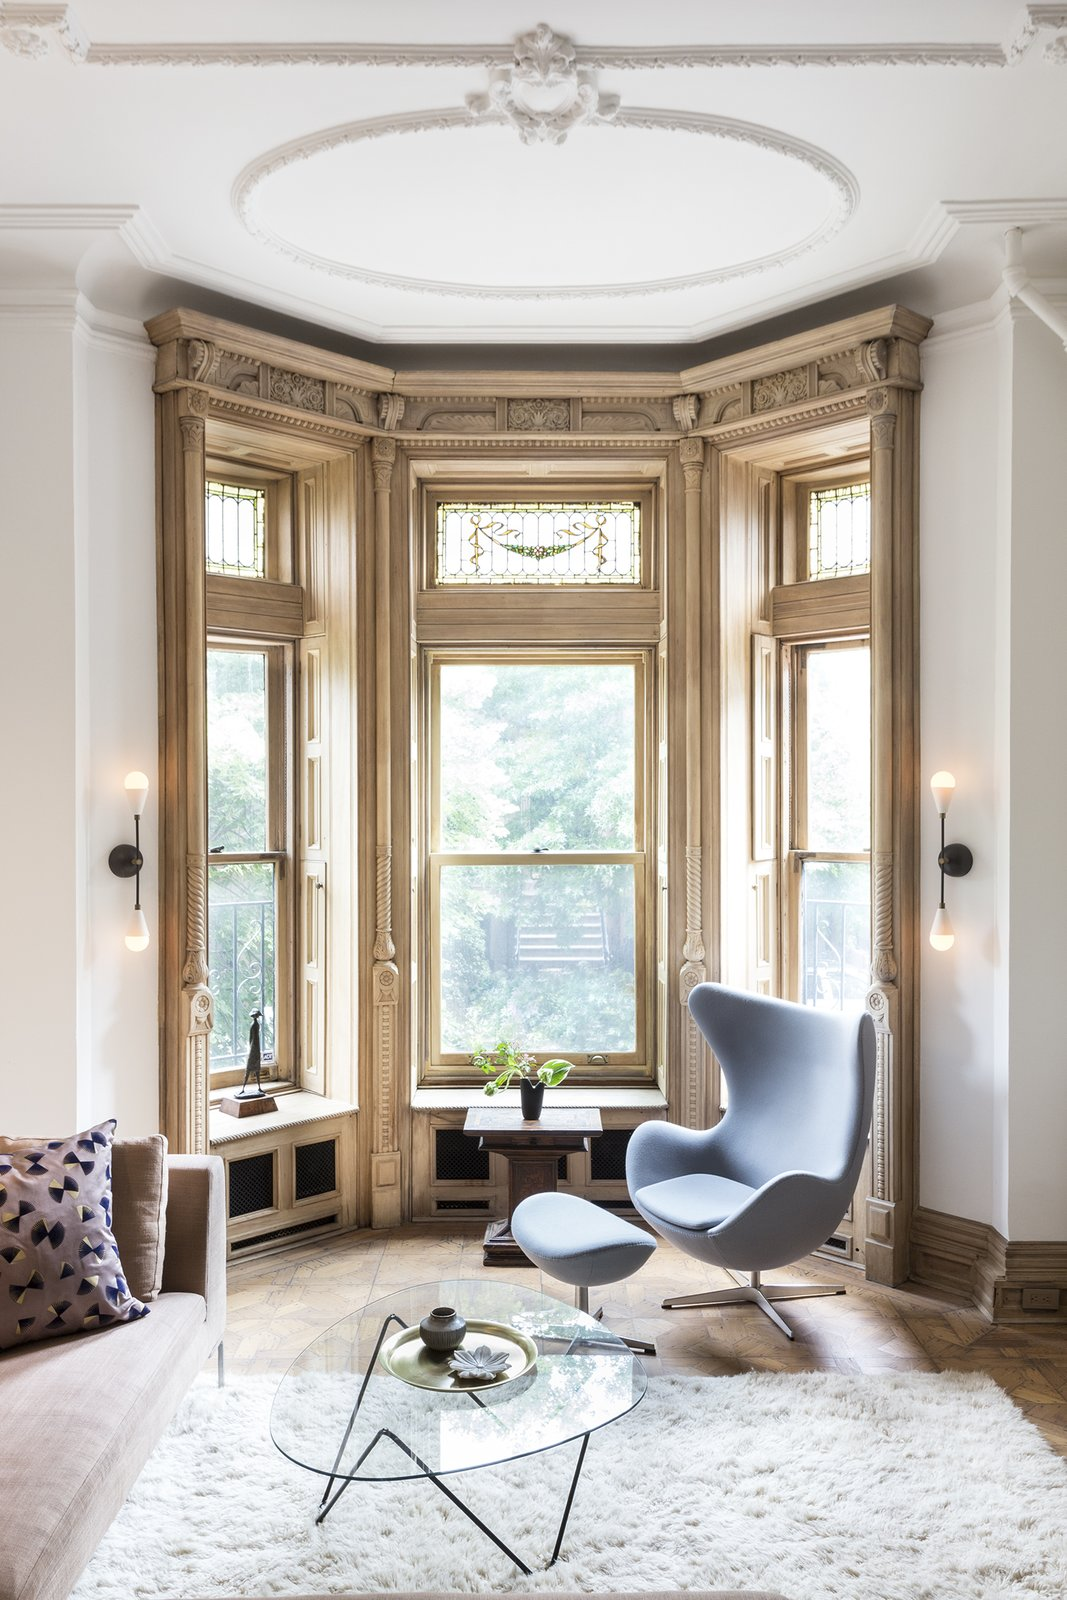 A brownstone in Brooklyn, New York was renovated by interior designer Kiki Dennis, complete with a full restoration of the wood window framing and decorative moldings. As much original fabric was retained as possible. How to Save Historic Windows on an Existing Property - Photo 8 of 10